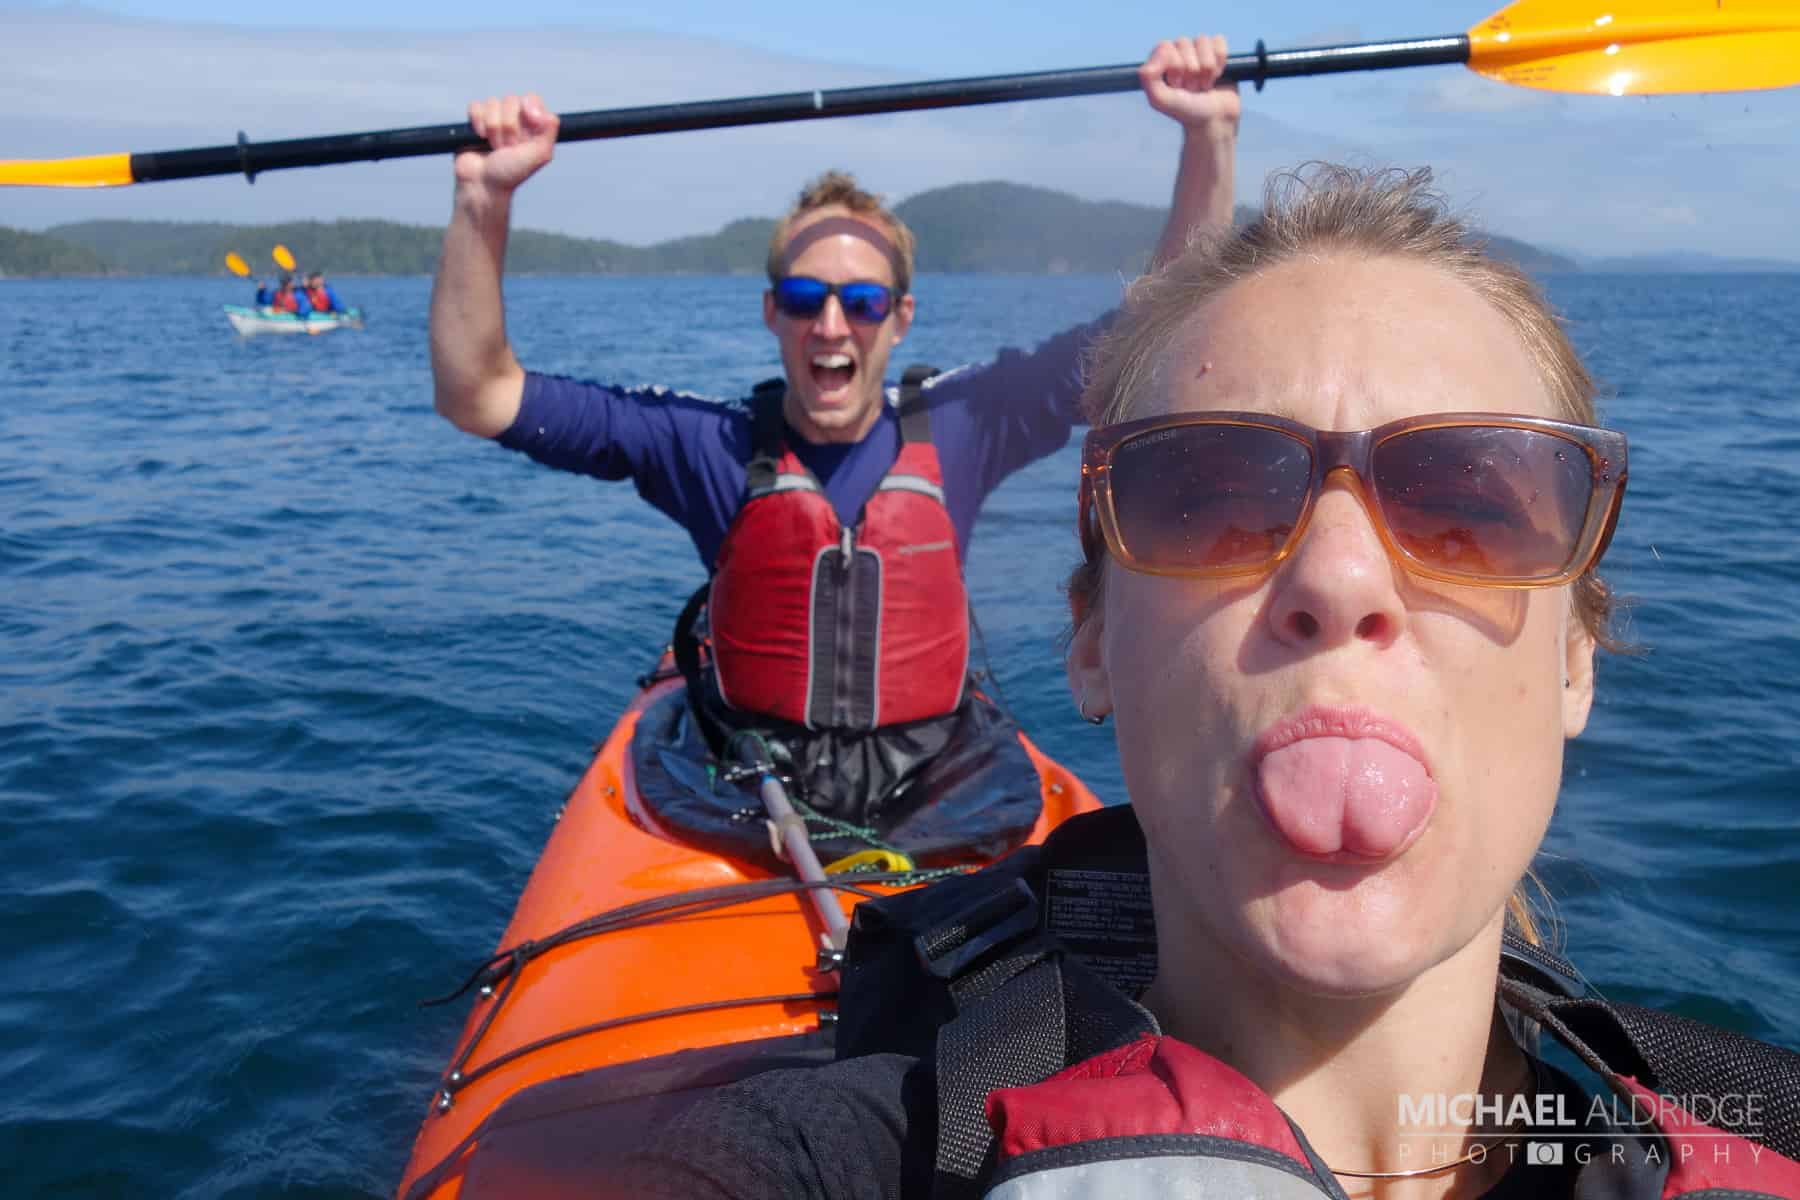 Excited to kayak the Johnston Strait, on the lookout for whales